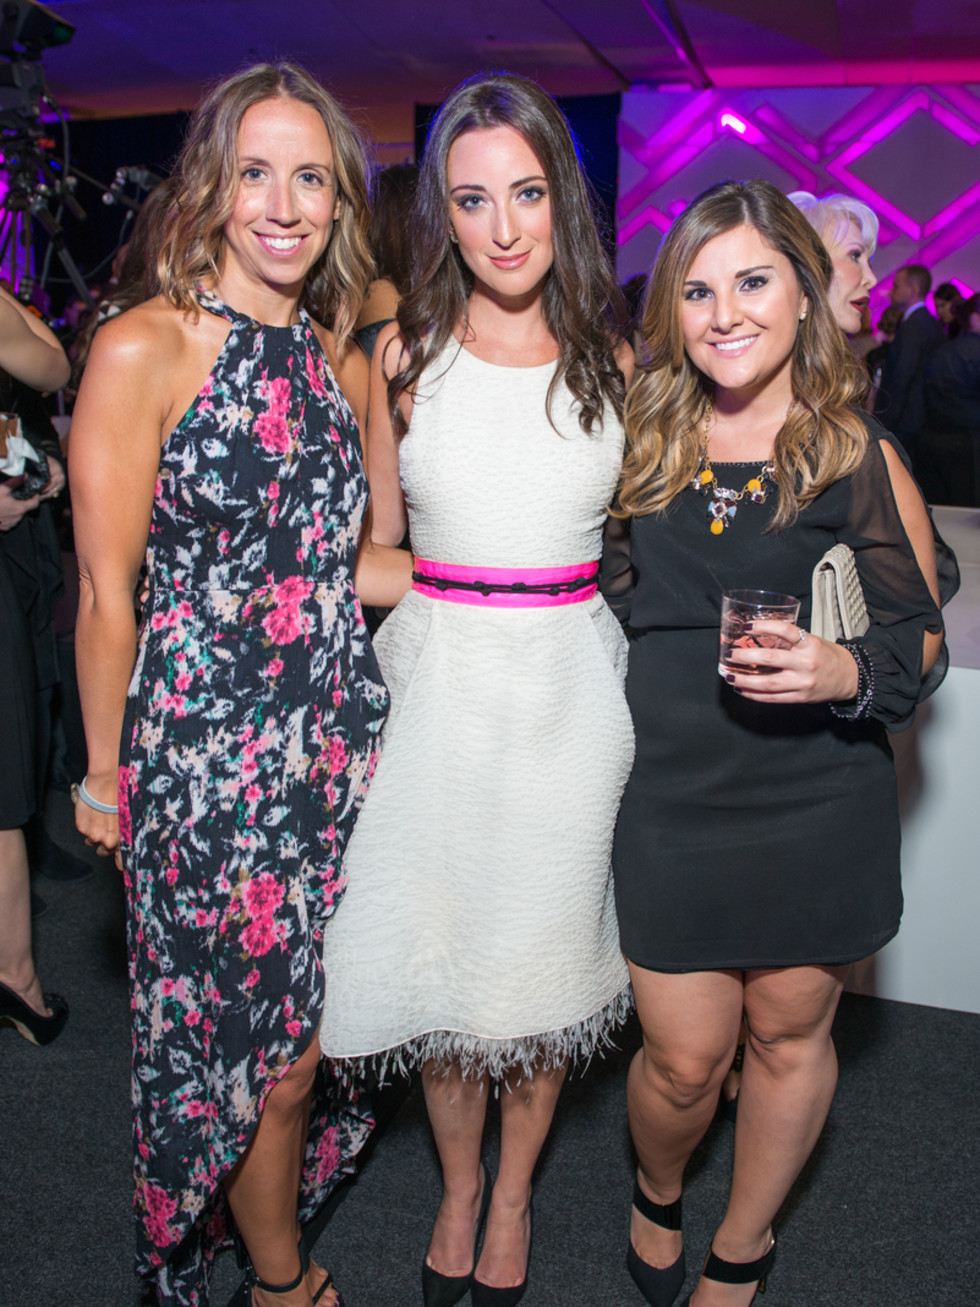 Houston, Vogue Simon Fashion Show, September 2015, Christa Allen, Micaela Erlinger, Katelyn Shea